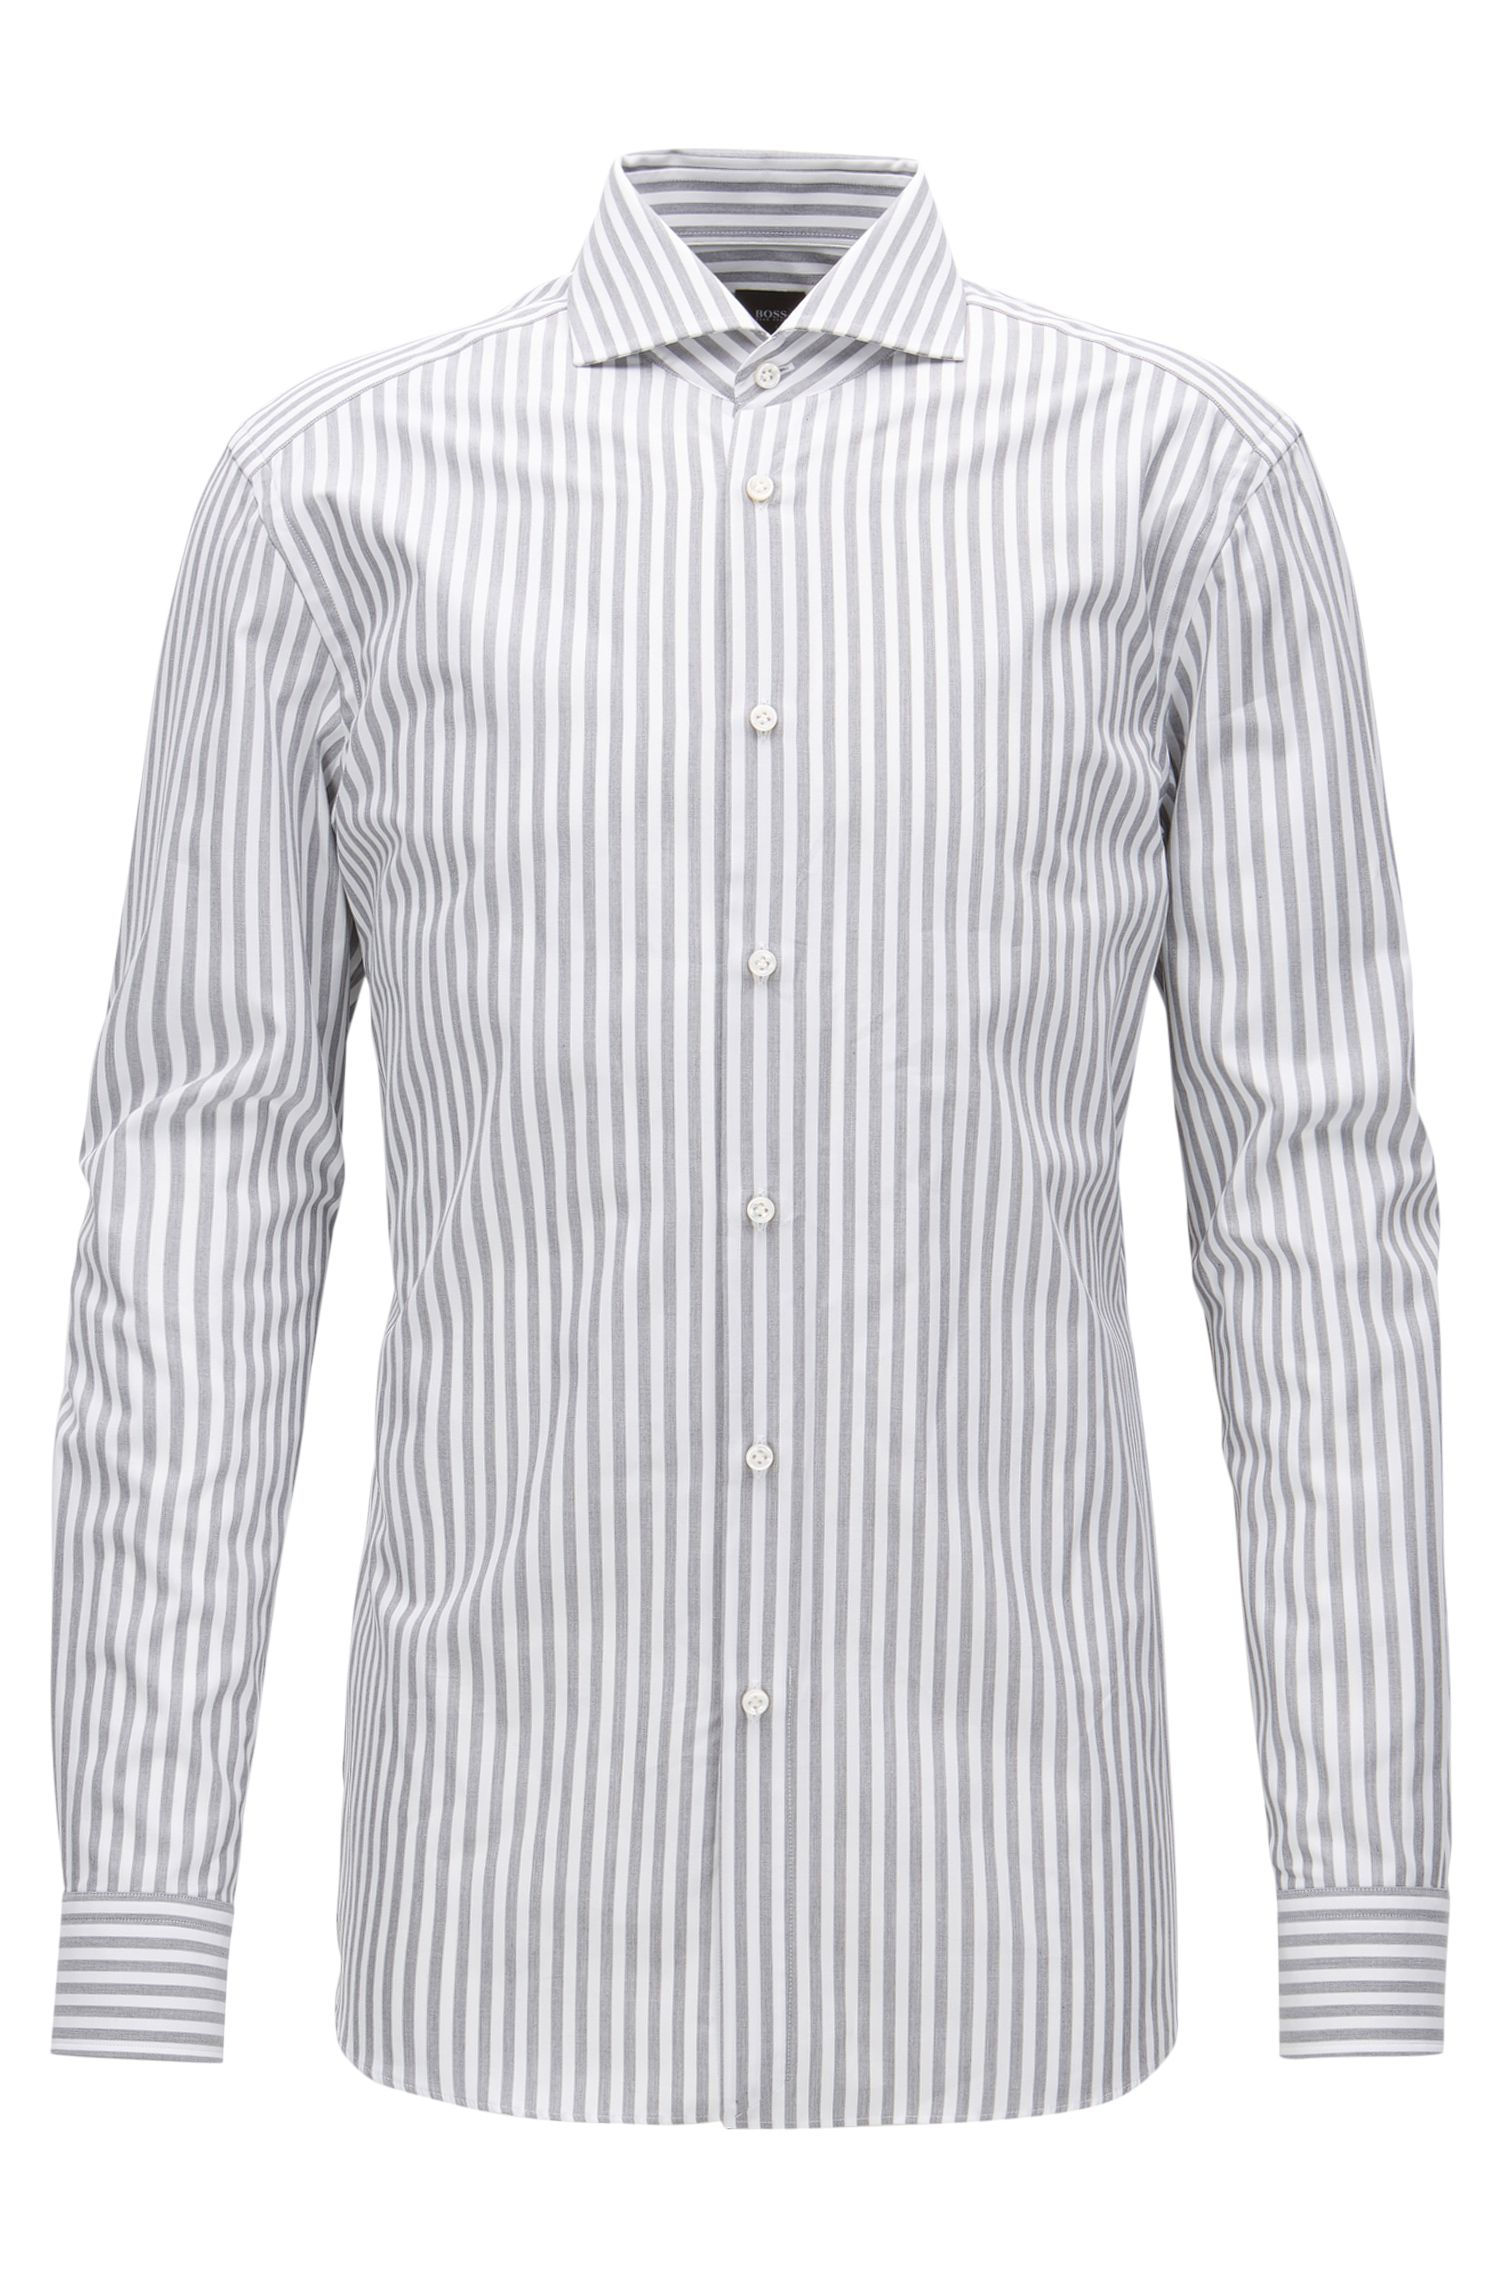 Italian Cotton Dress Shirt, Slim Fit | T-Christo